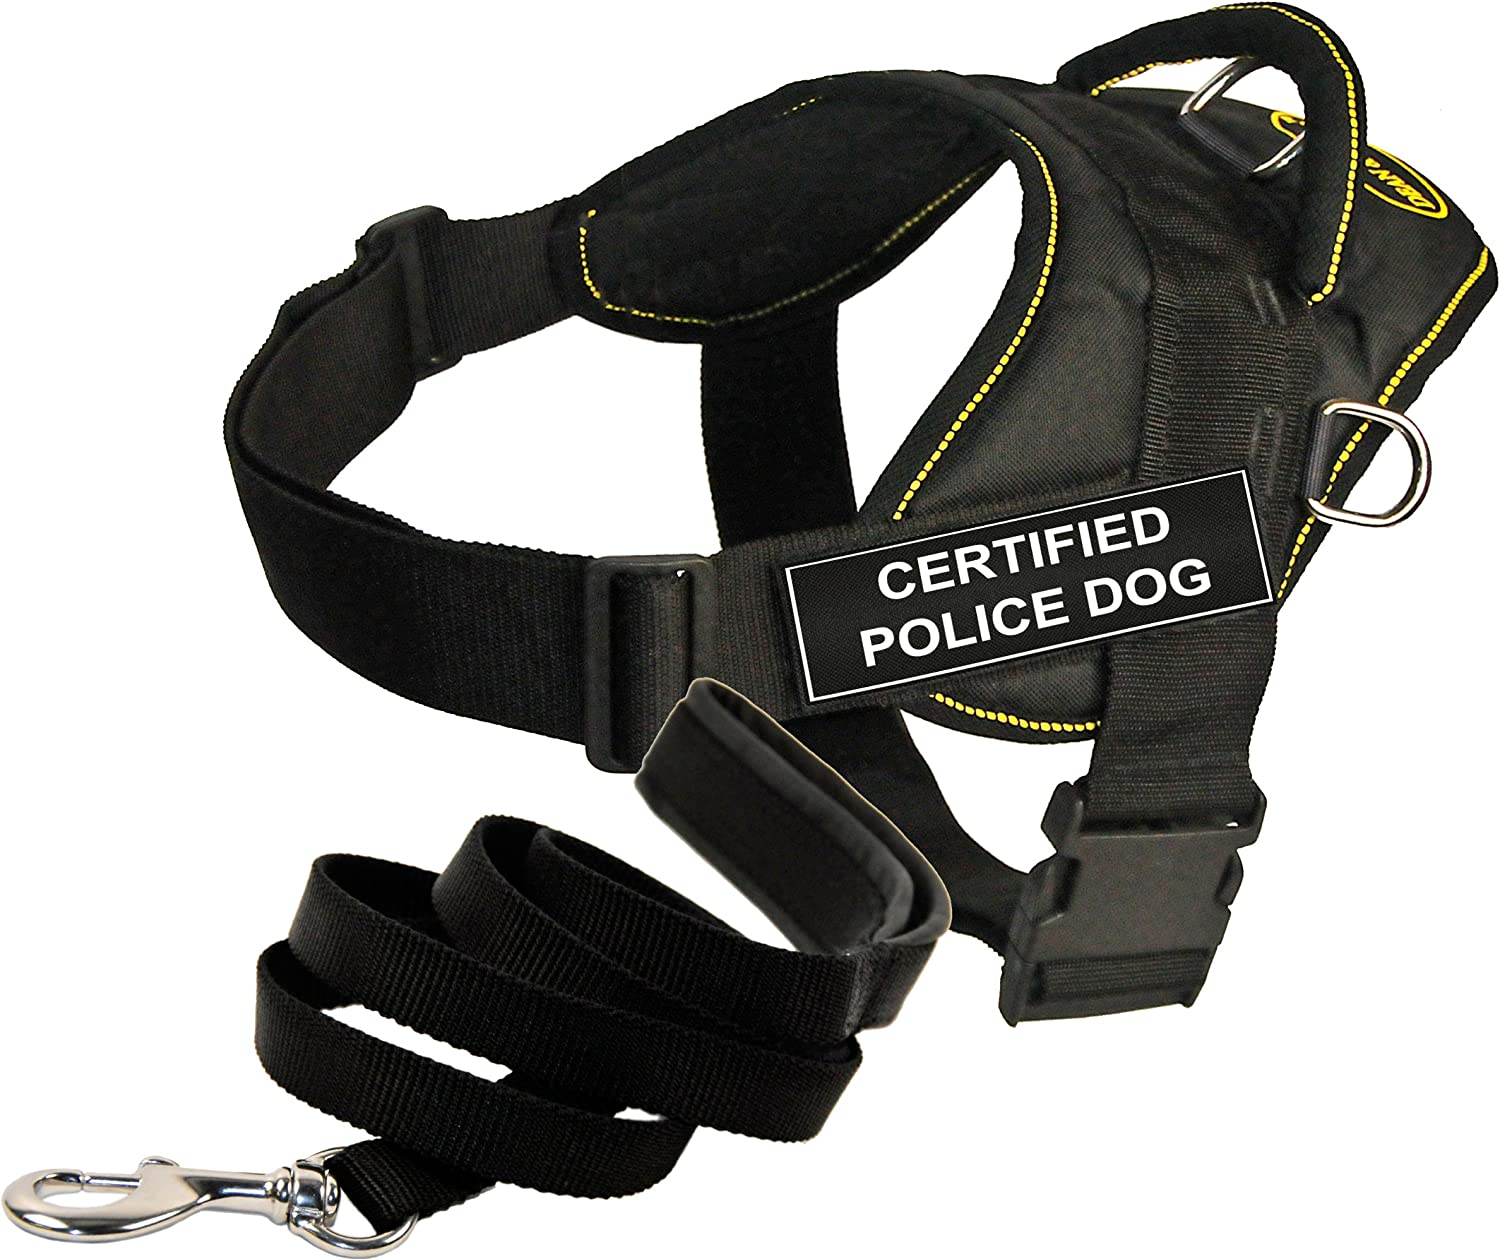 Dean and Tyler Bundle  One DT Fun Works  Harness, Certified Police Dog, Yellow Trim, Large + One Padded Puppy  Leash, 6 FT Stainless Snap  Black